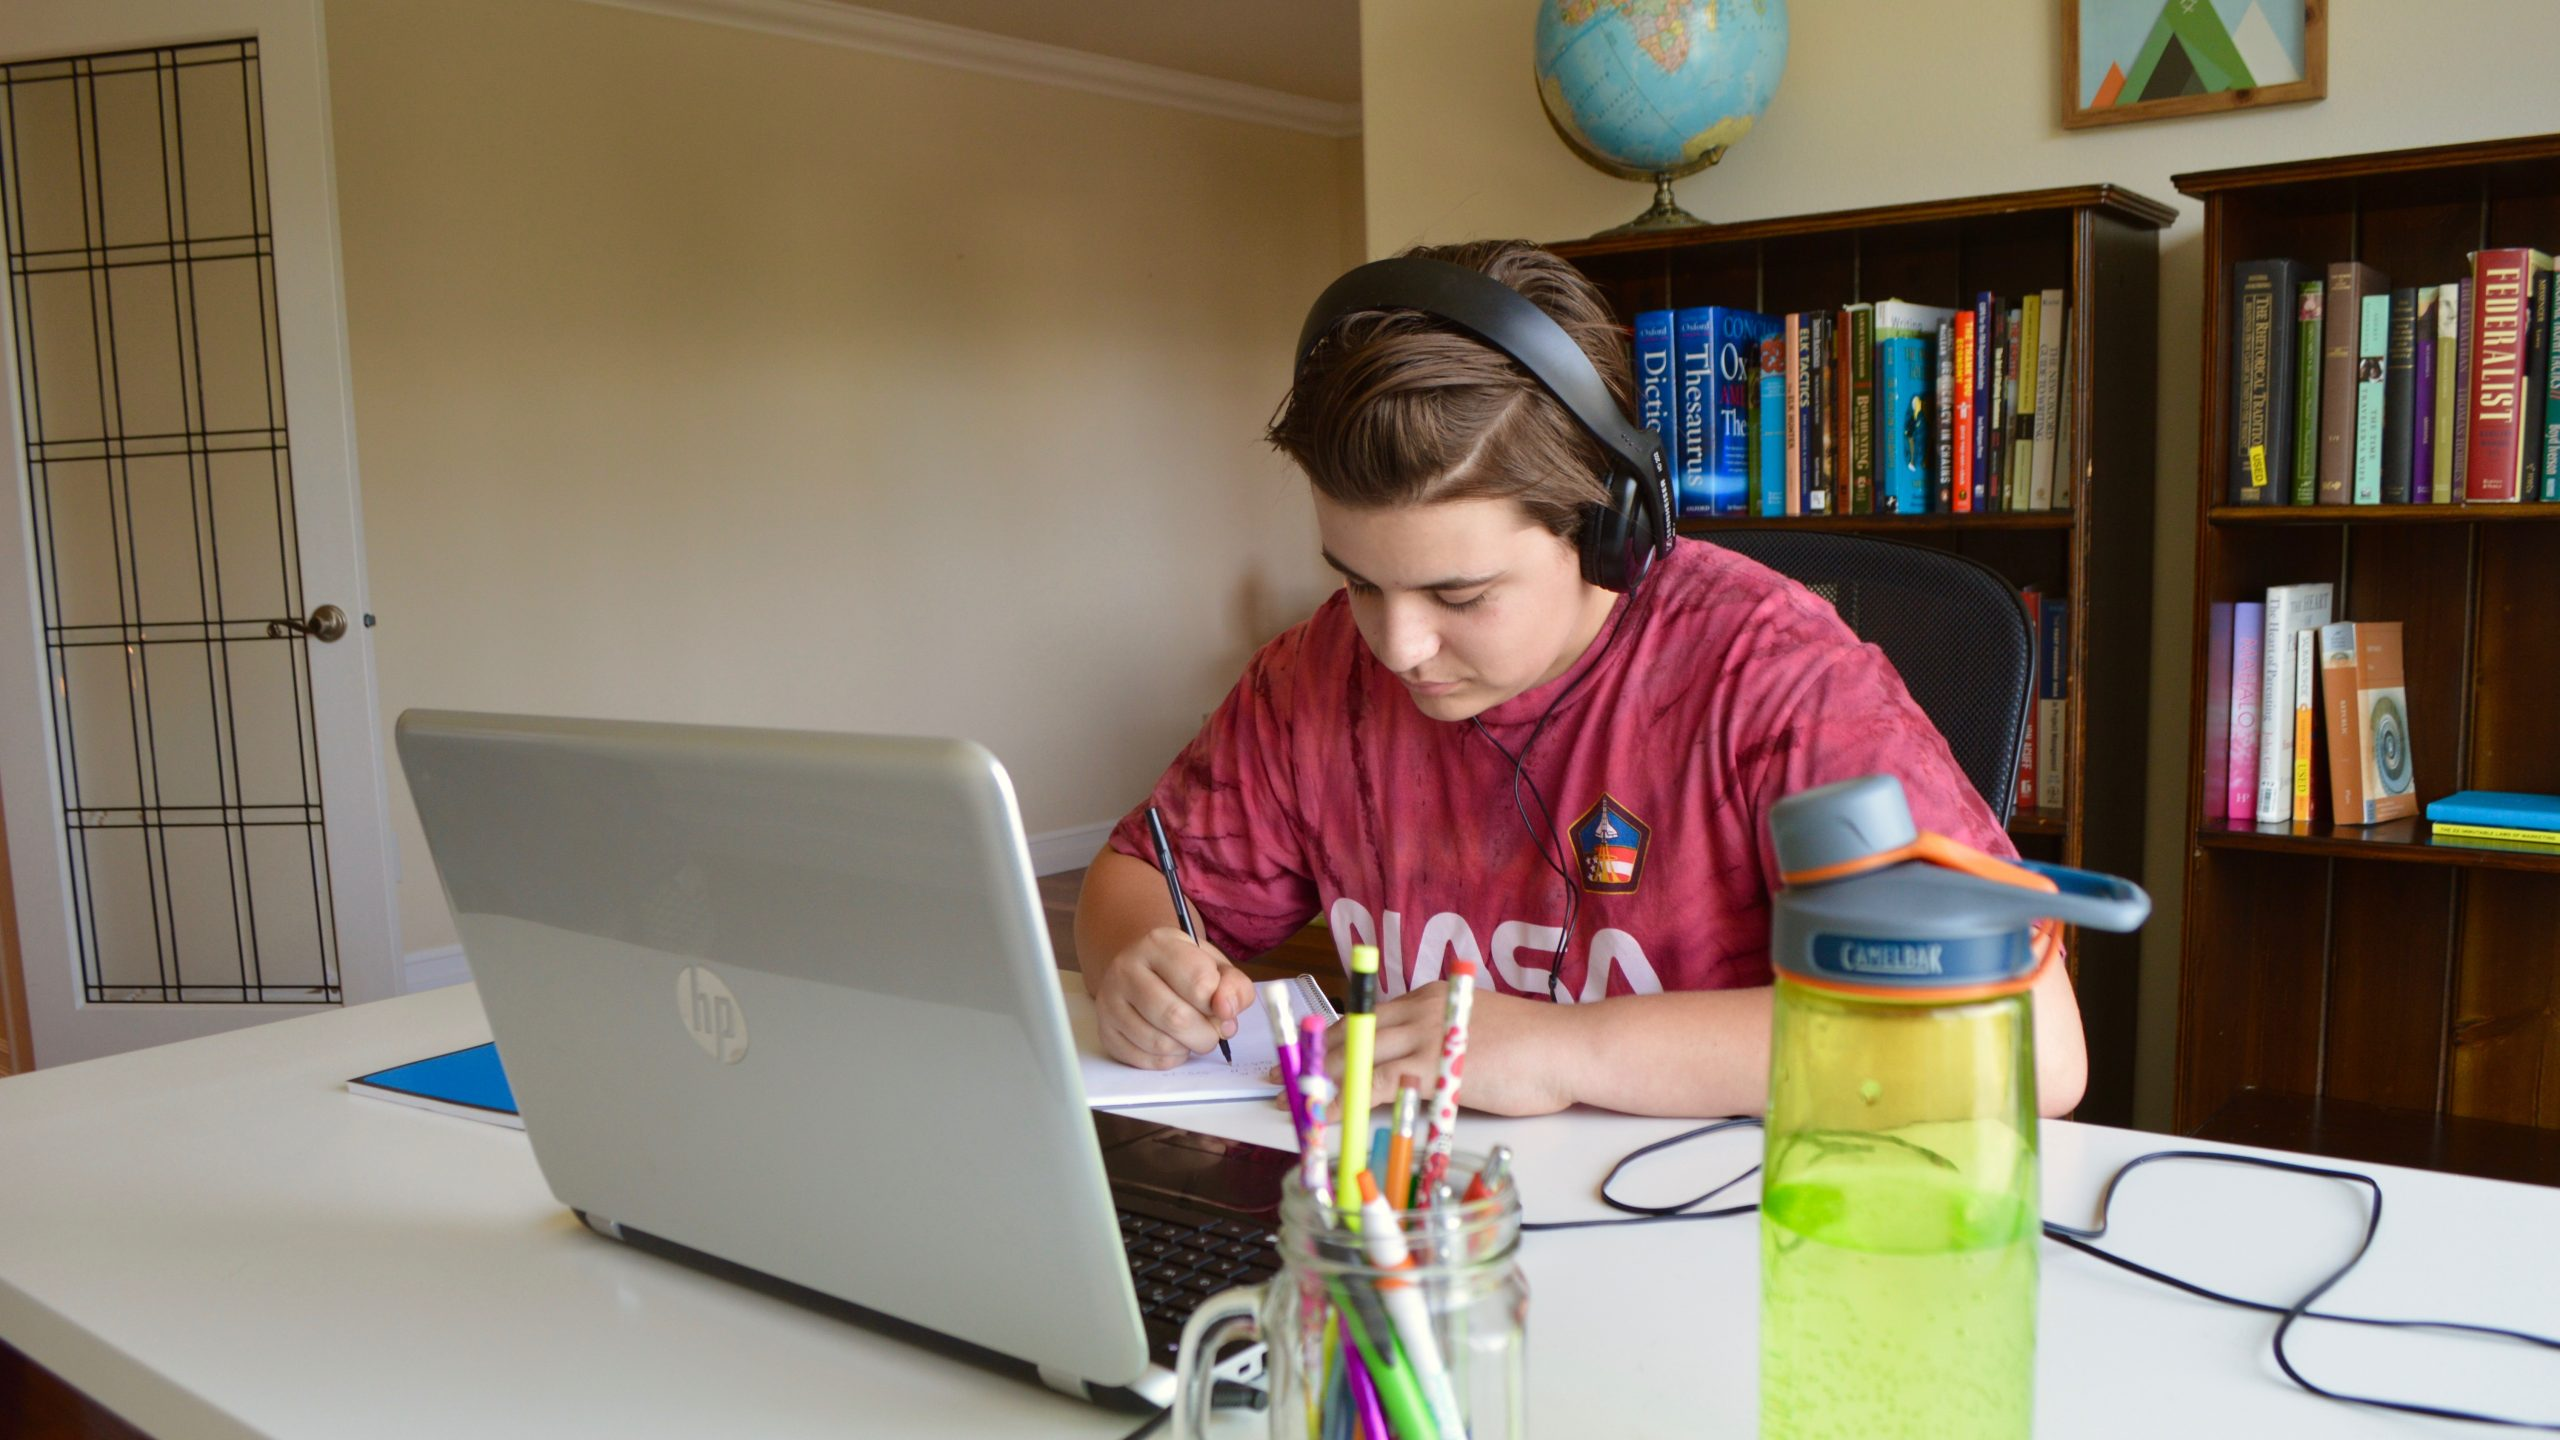 ALVS student learning at home with laptop, school supplies, books on a shelf and a globe.